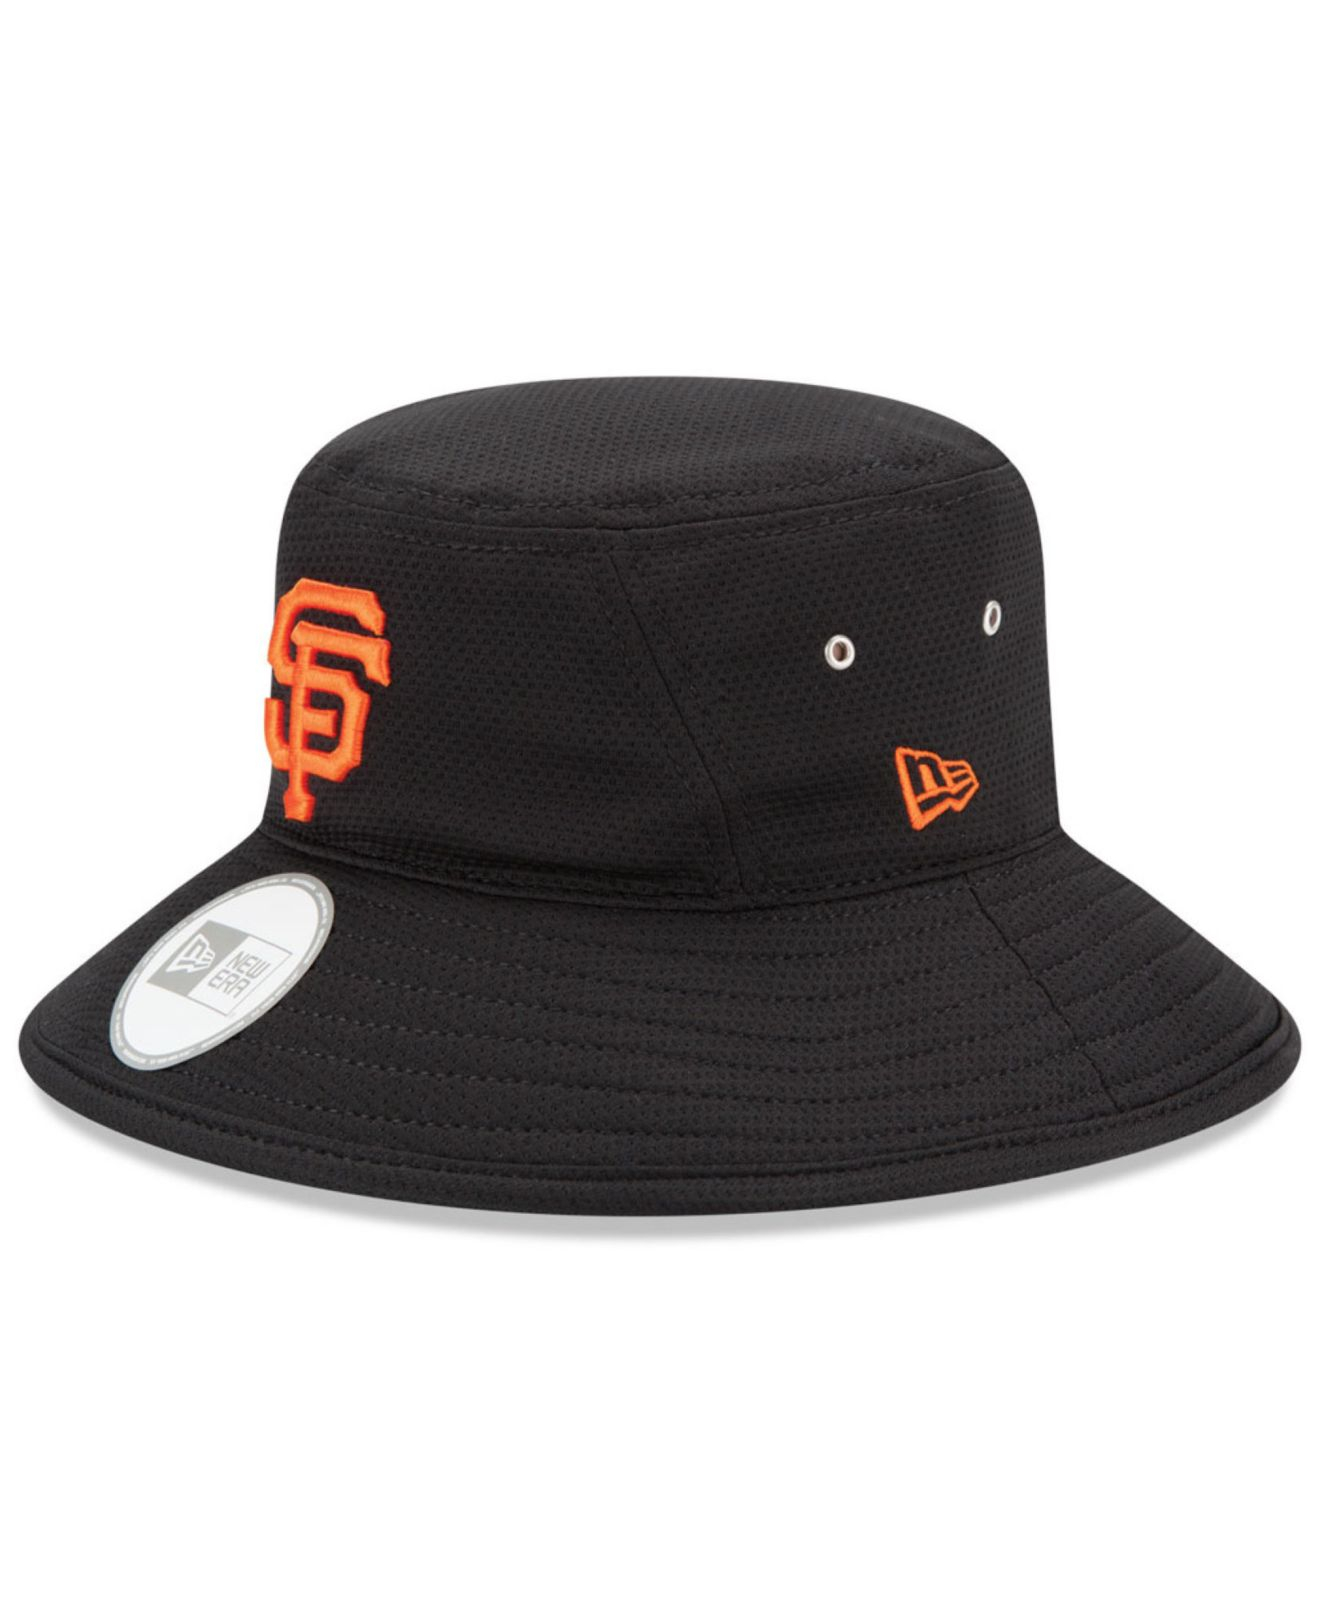 45b77d0ceaa ... cheap lyst ktz san francisco giants redux bucket hat in black 64a4e  faa87